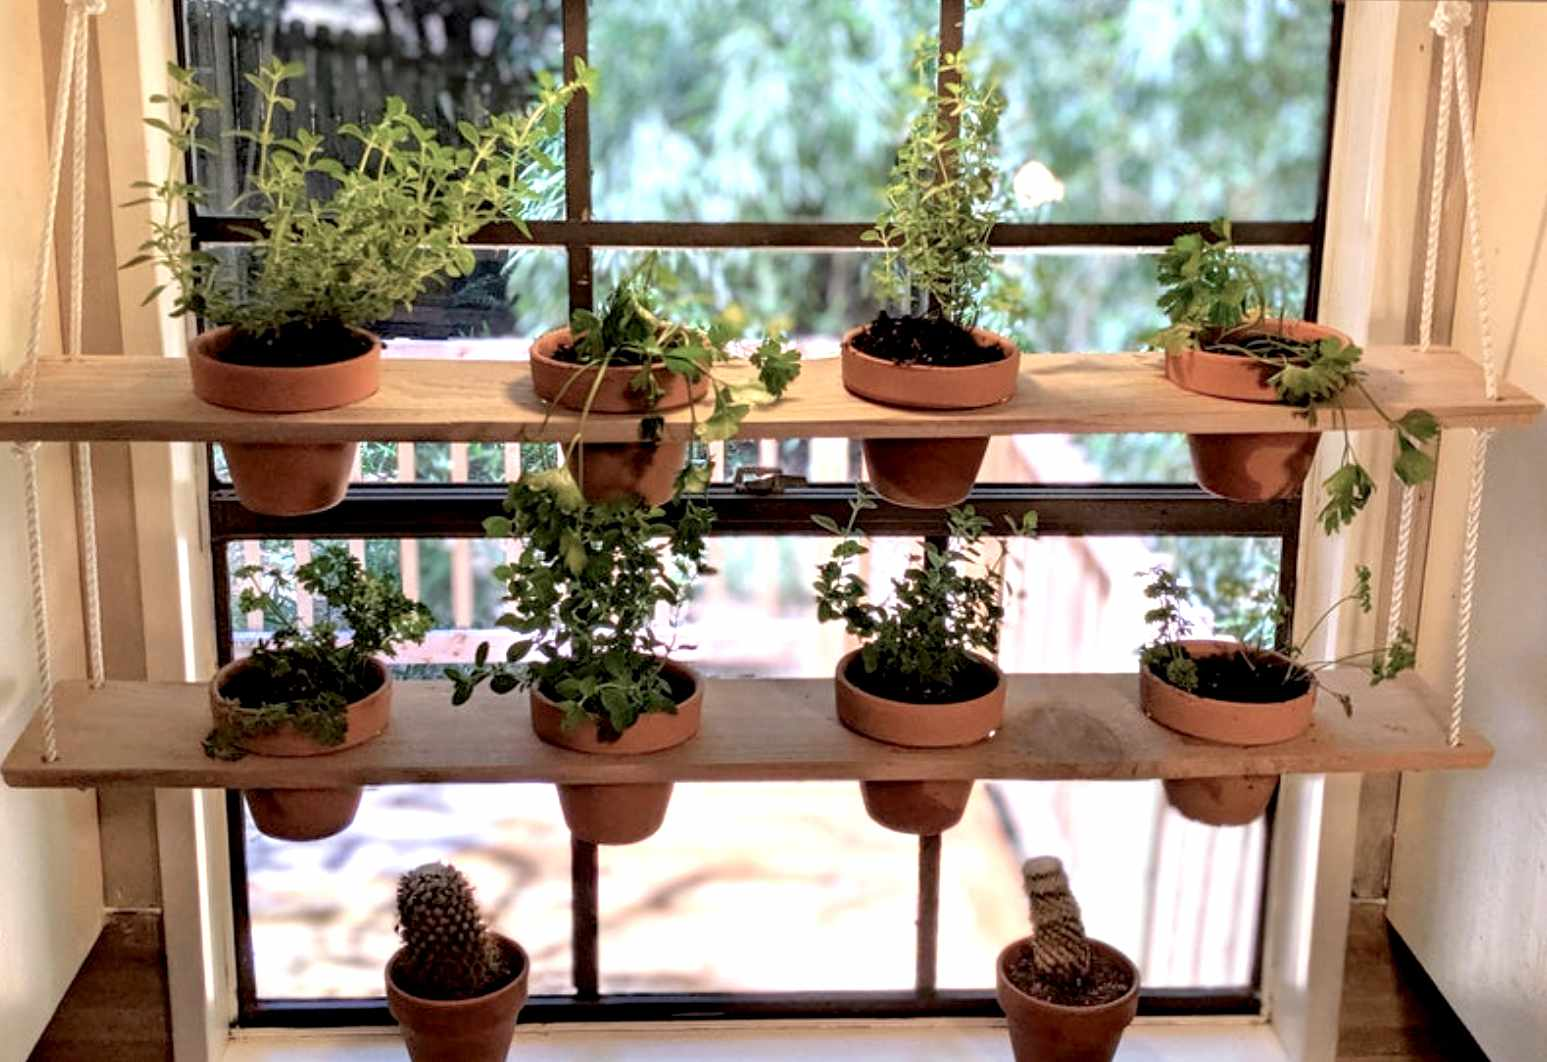 Hanging shelves holding plants in front of a window